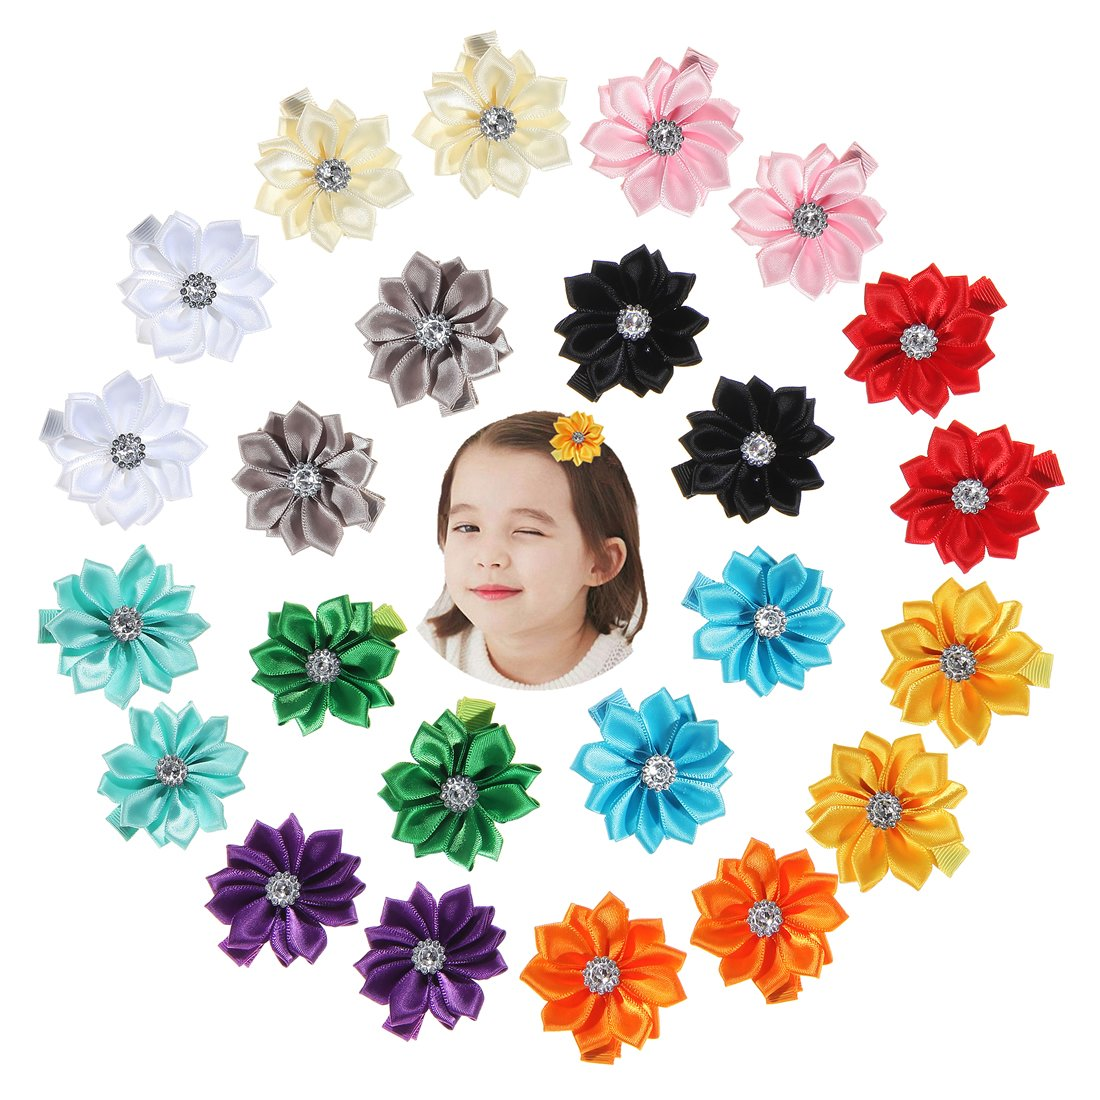 inSowni 12 Pairs Alligator Hair Clips Satin Flower with Rhinestone for Baby Girl Toddlers (C12)